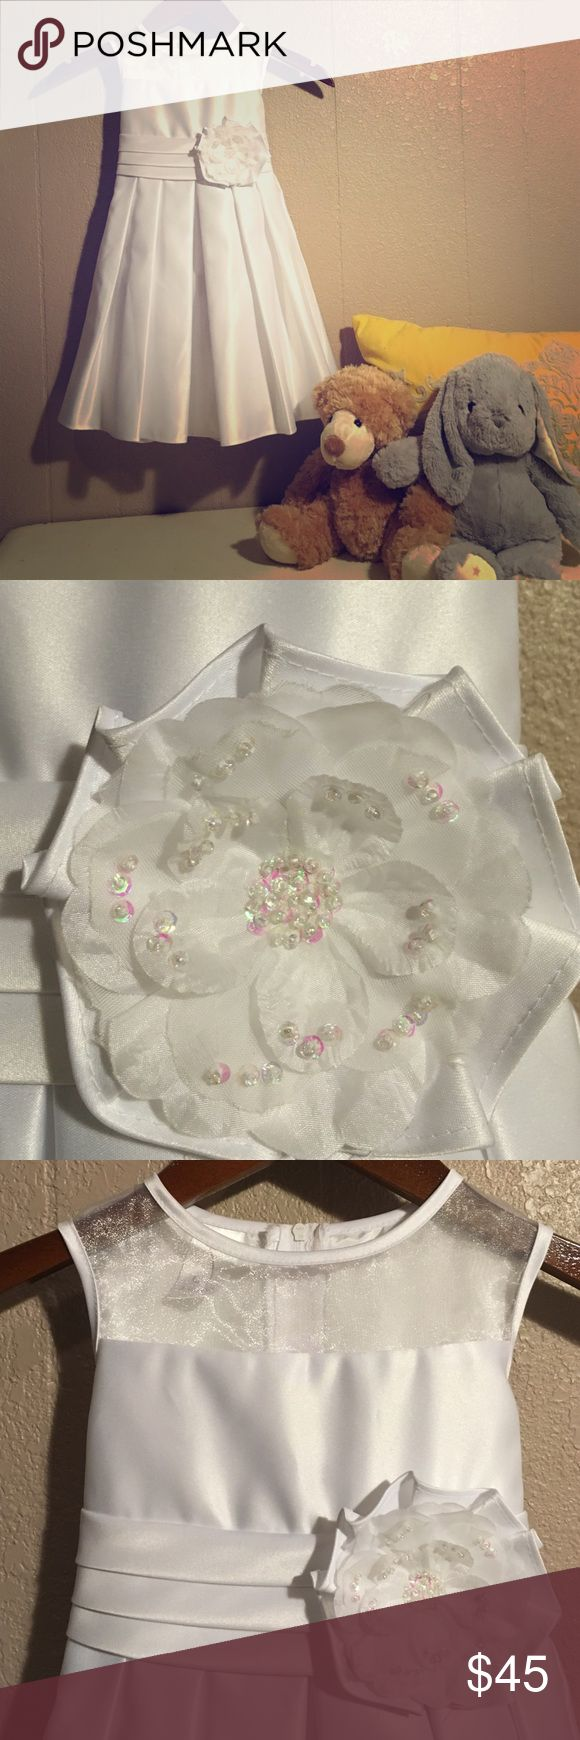 NWT Julia Lee girls dress White satin little girls dress with sheer organza neckline. Has a pleated waistband and soft pleated skirt with back tie sash. Floral accent pin with just the right amount of sequins. Unaltered Julia Lee Dresses Formal